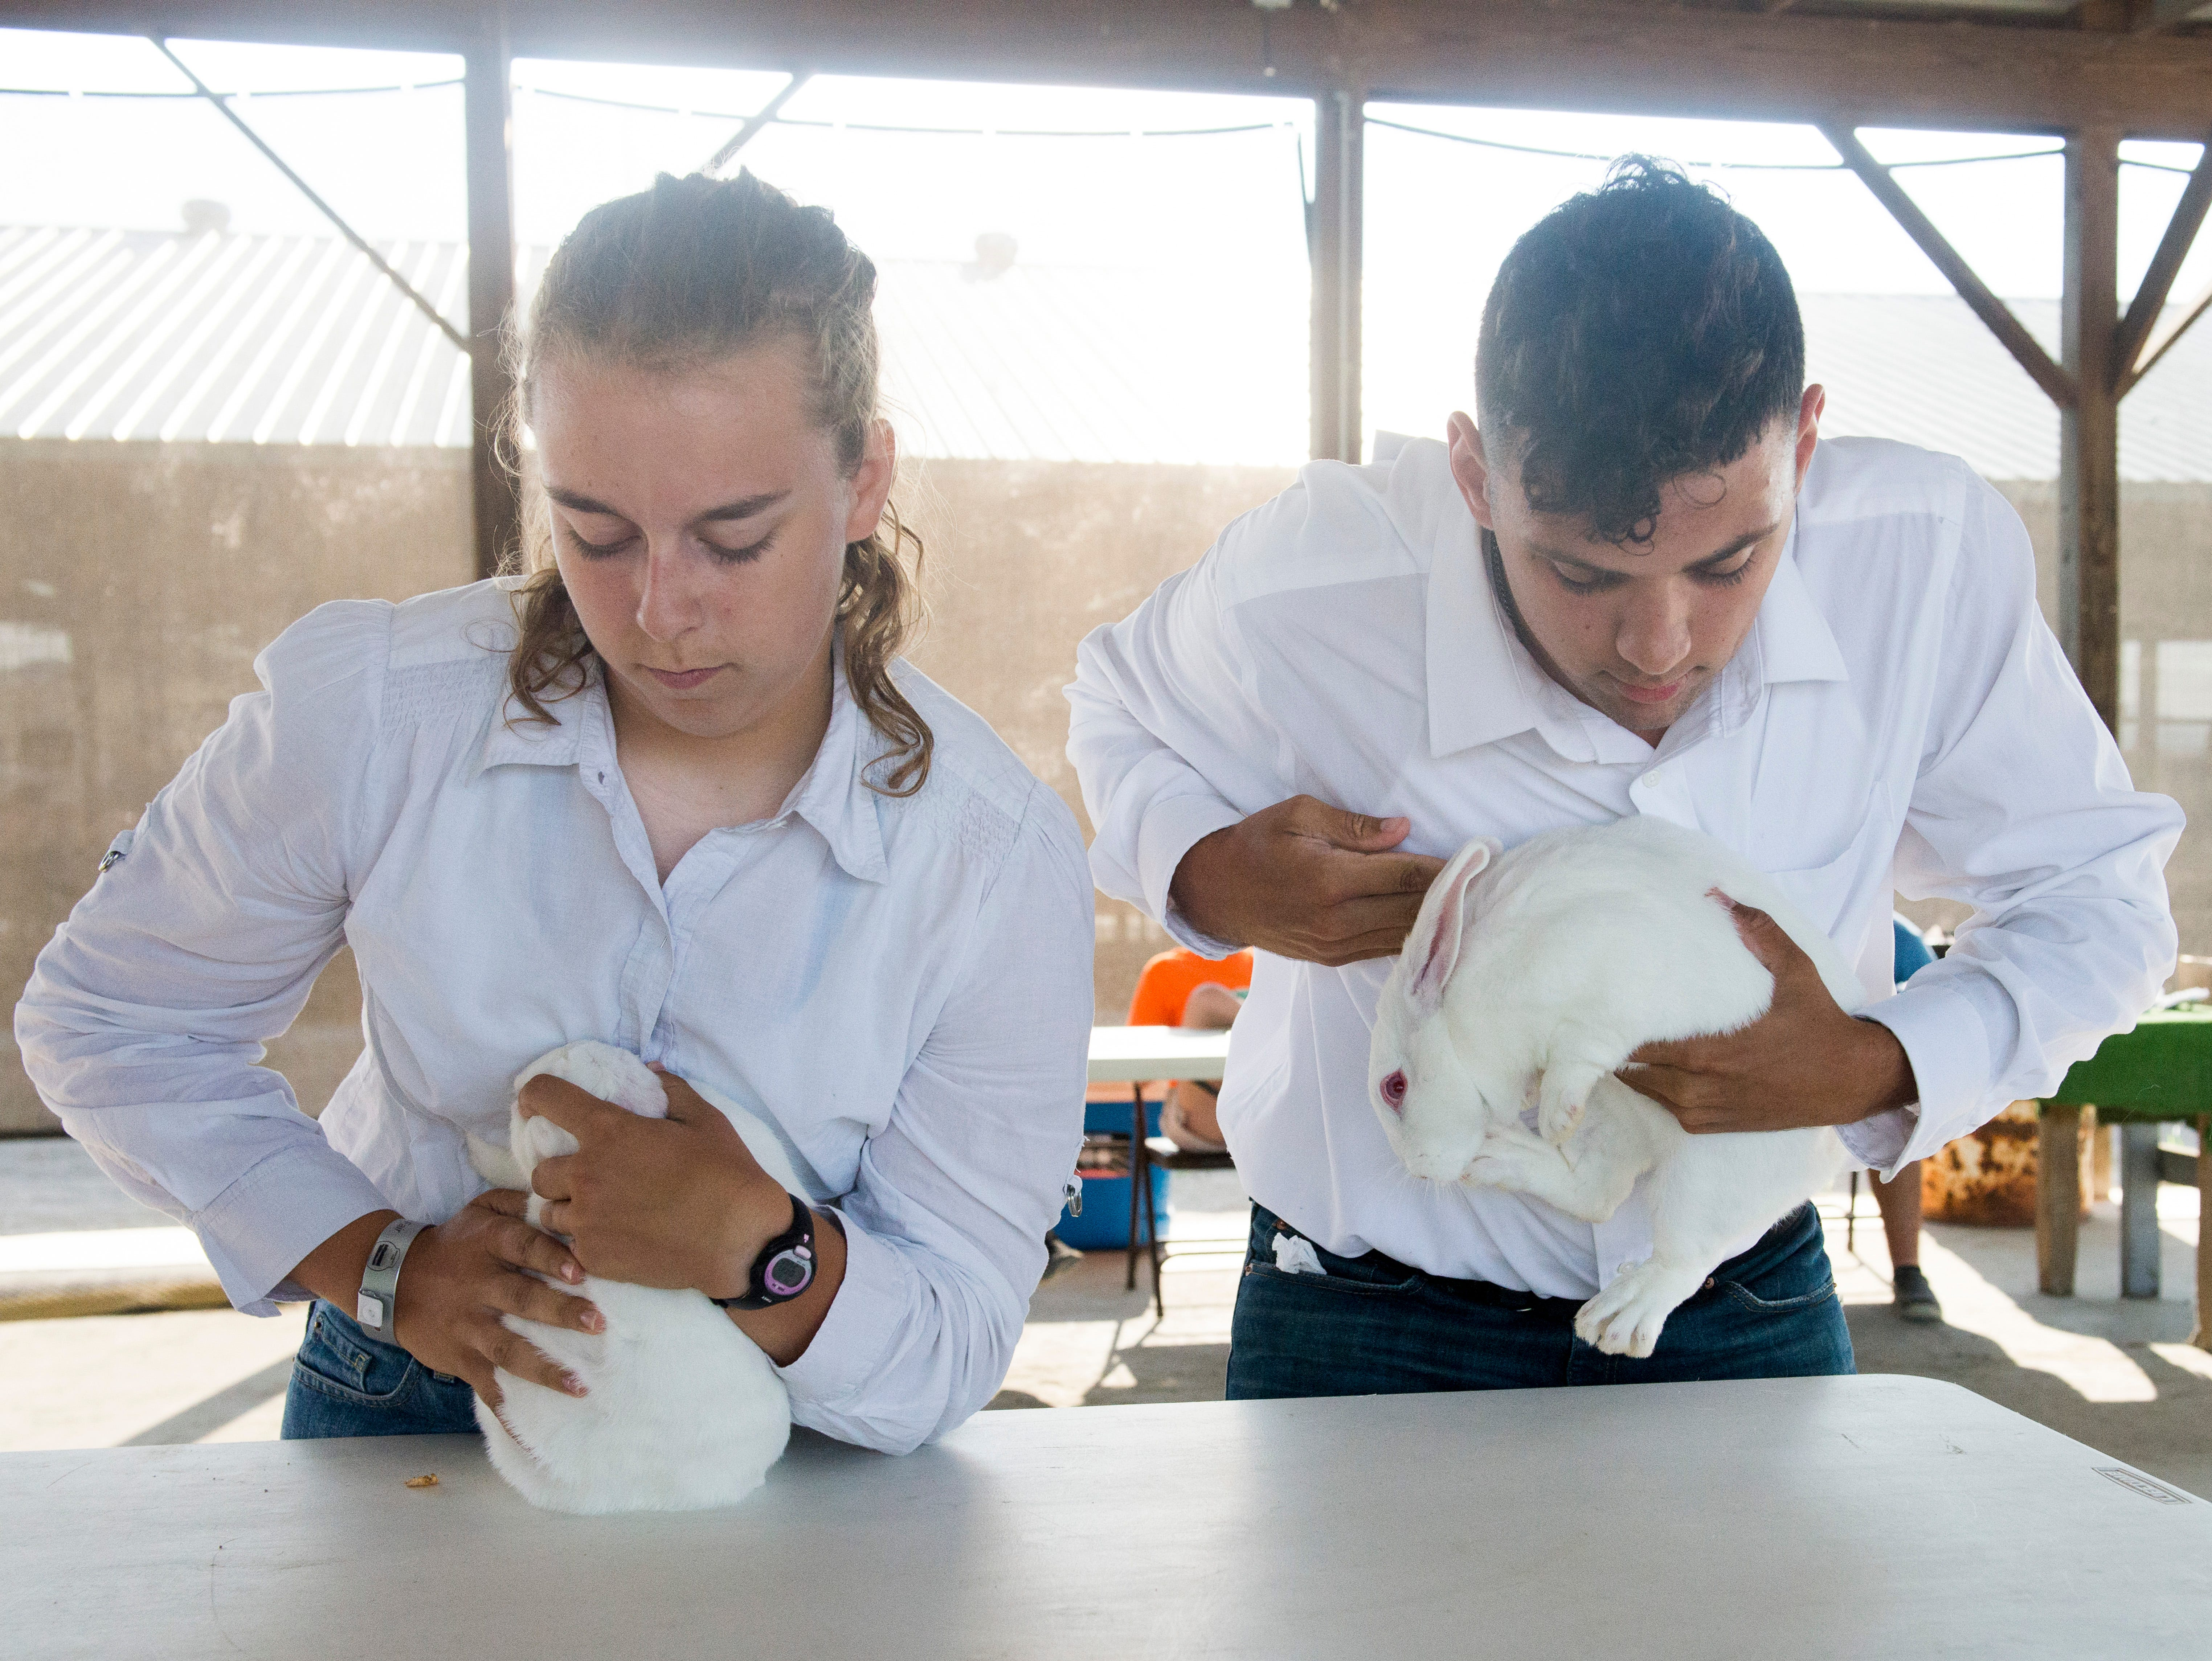 From left: Ruth Beery, 14, and Jaiden Rittinger, 17, compete in the Small Animal Showman of Showmen Contest at the Ross County Fair on August 9, 2018 in Chillicothe, Ohio. Beery was awarded the First Place in the Senior category of Showman of Showmen for Small Animals.